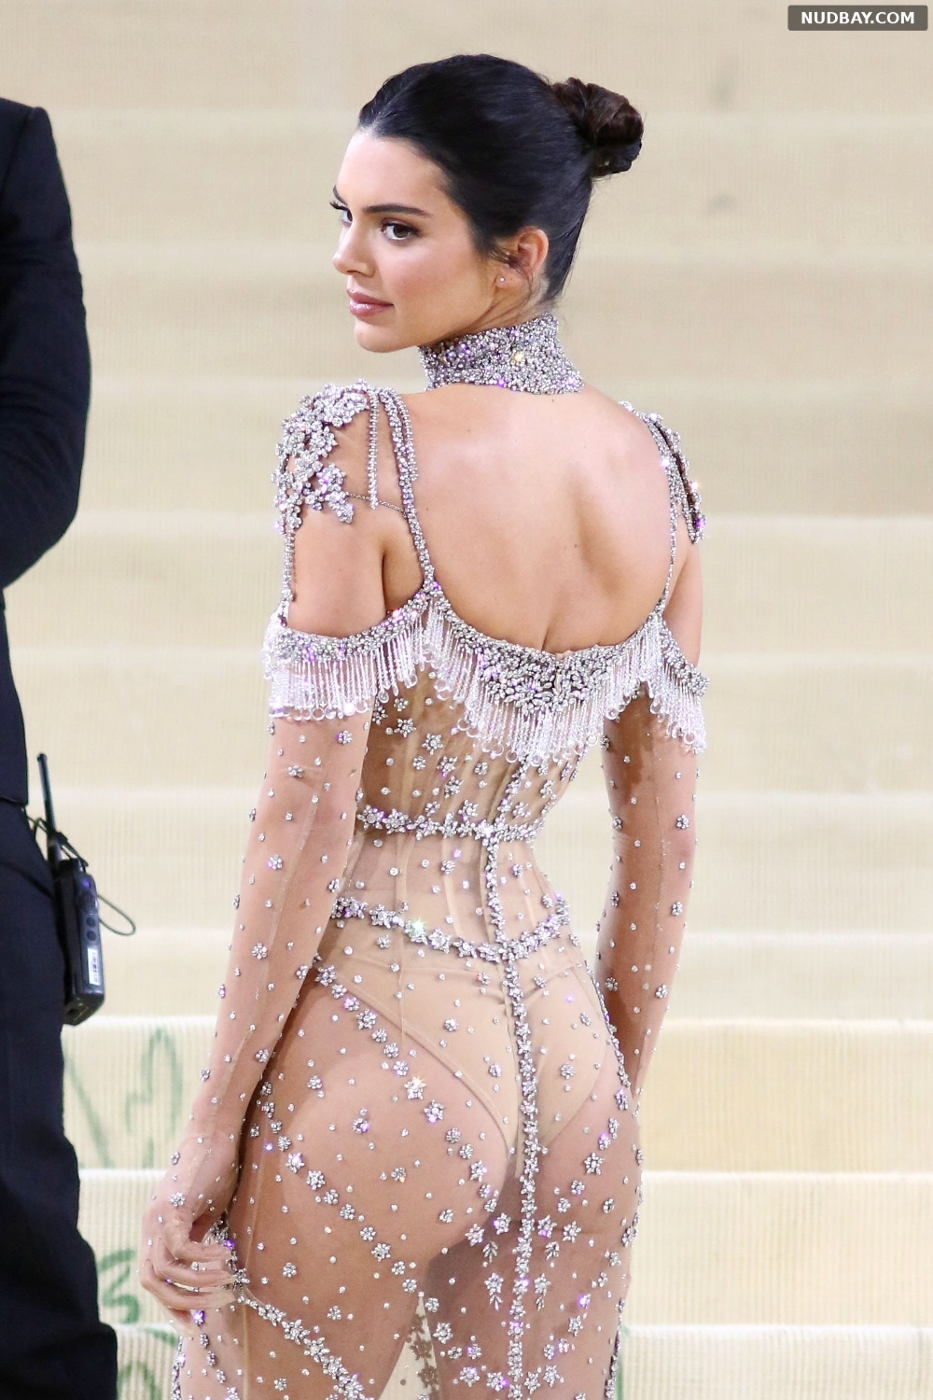 Kendall Jenner Booty at The Met Gala Celebrating in New York City Sep 13 2021